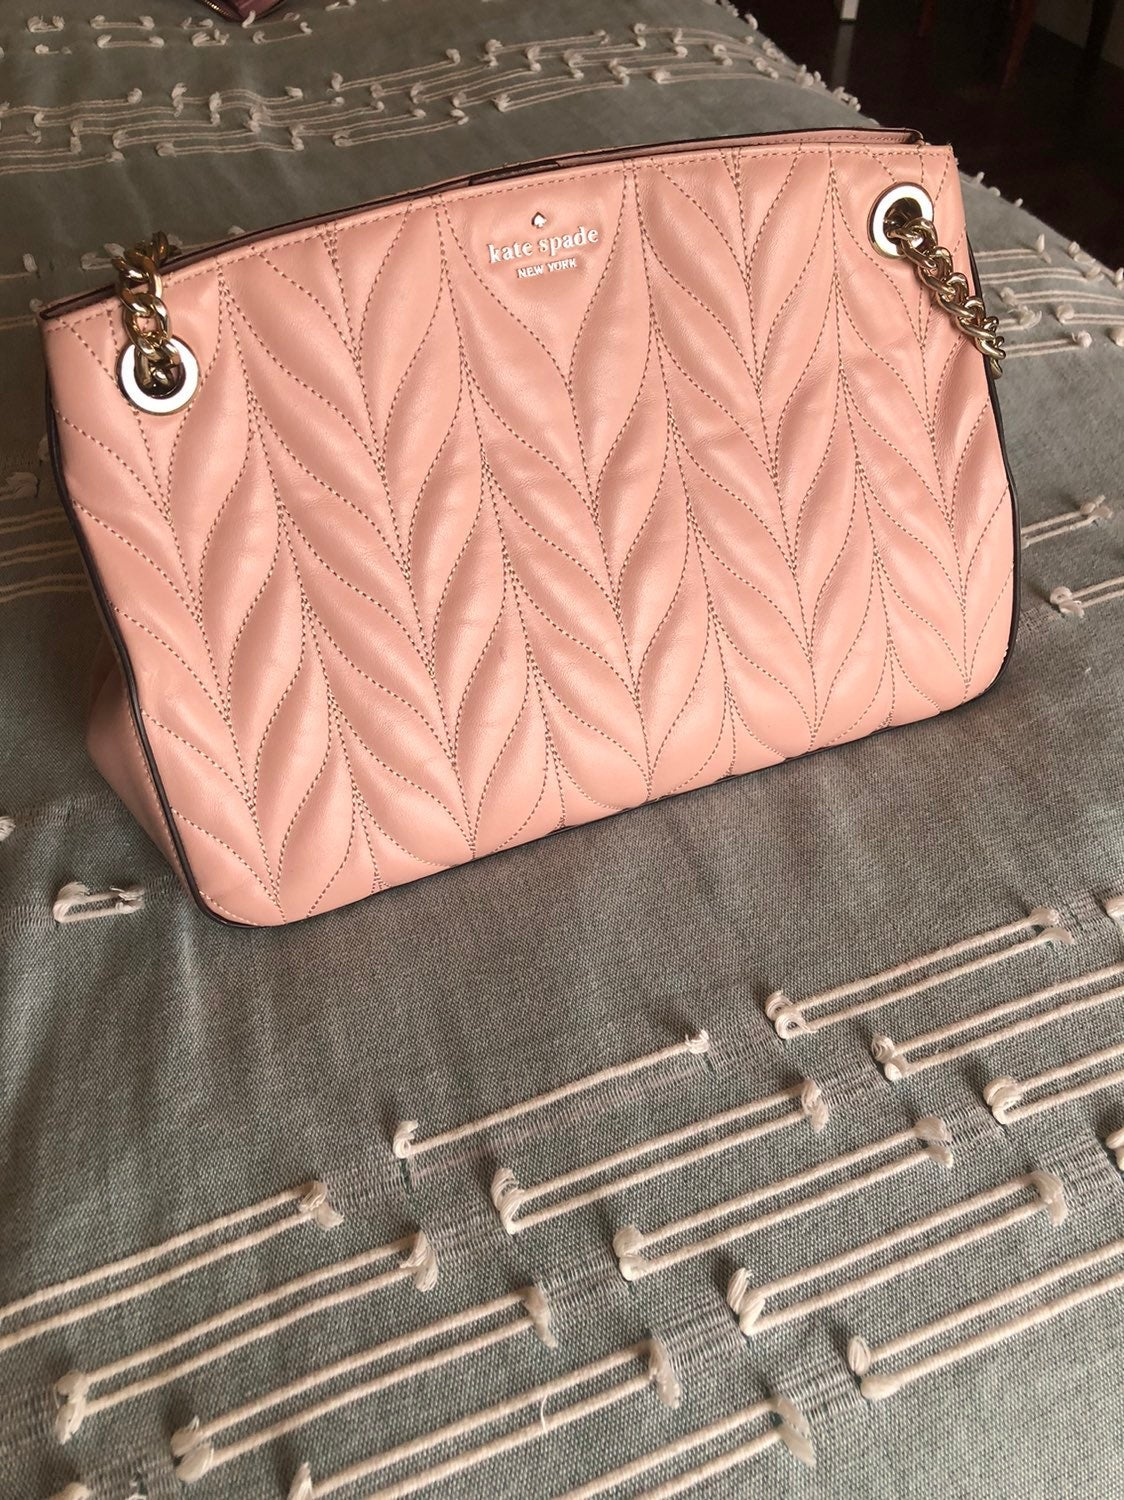 Kate Spade purse and waller